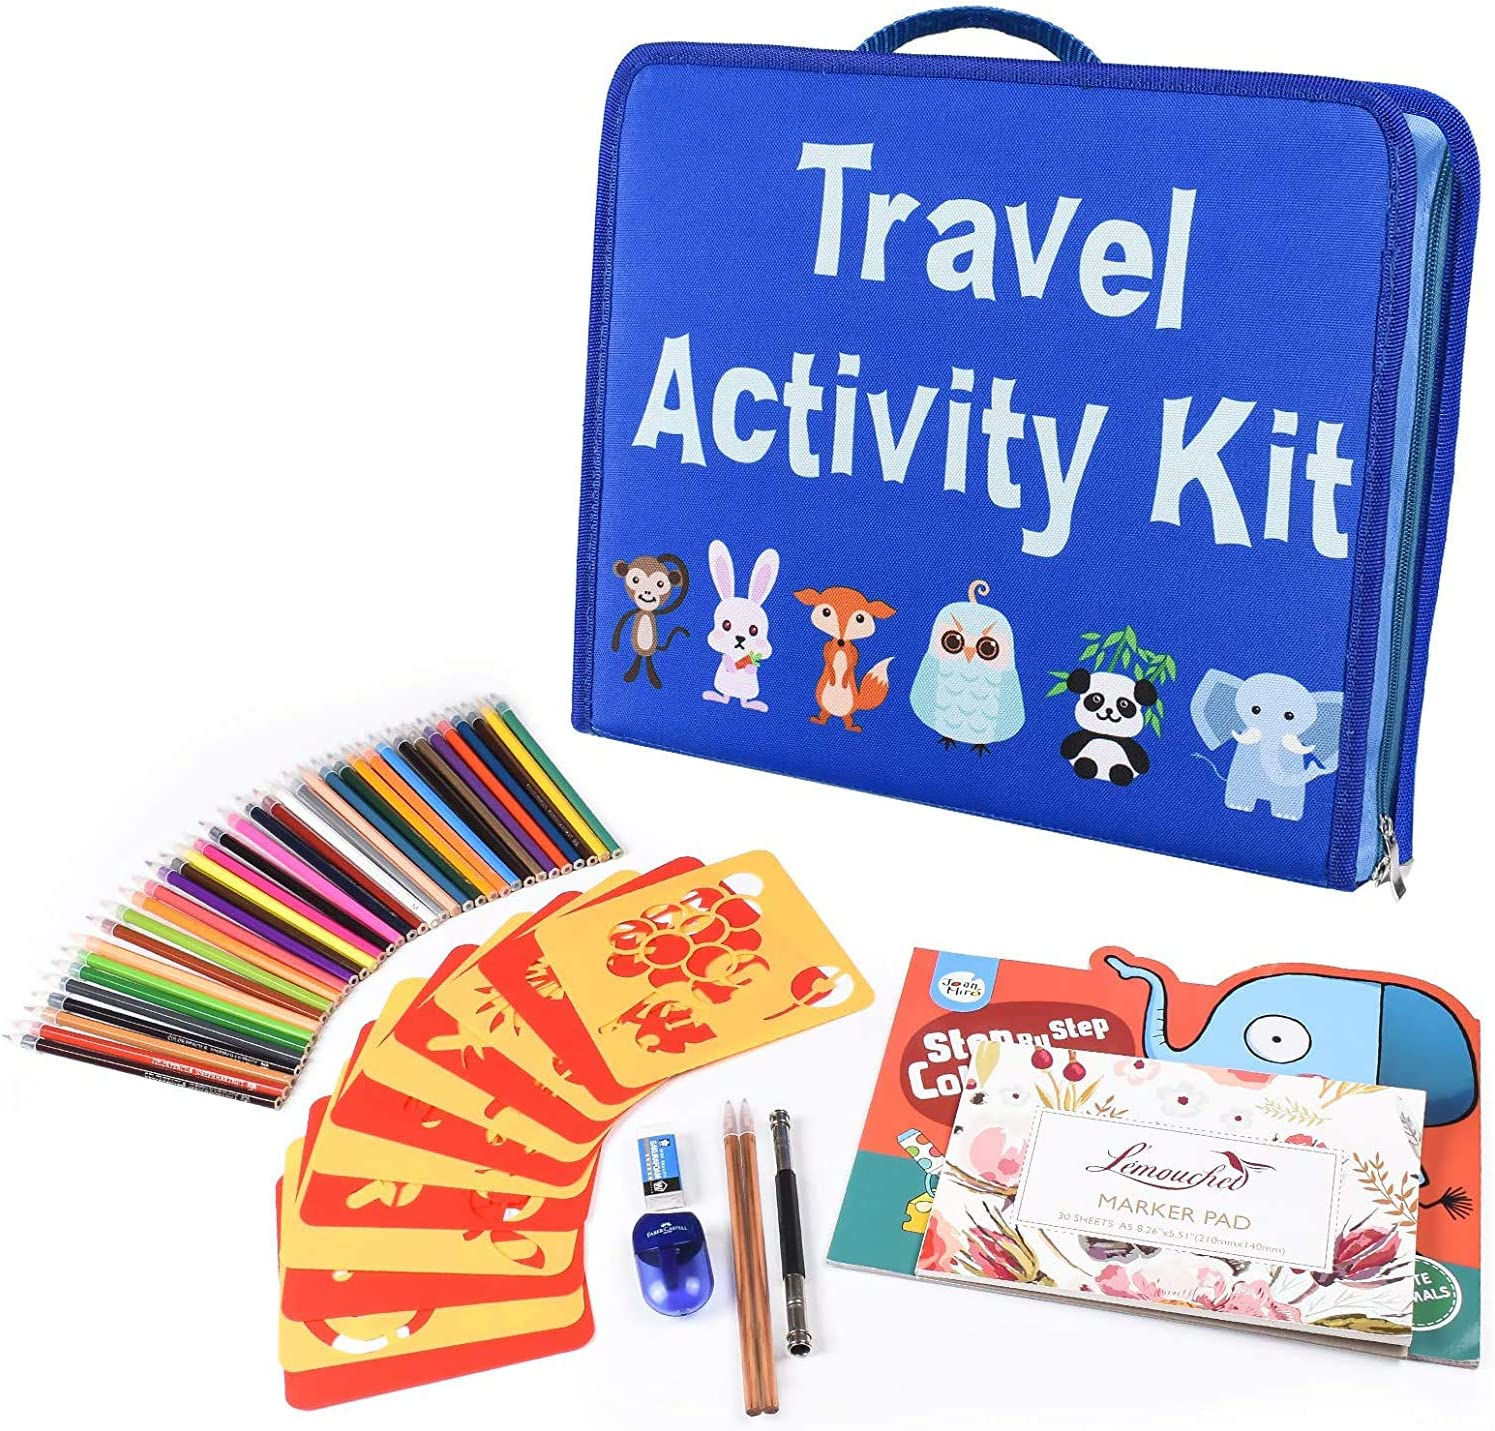 L'émouchet Travel Activity Kit, Laptop Style Desk with Writing and Drawing Accessories, Large 92 Kids Stencil Sets,Ideal Educational Toy and Creativity Kit,The Perfect Kids Gift for Any Occasion